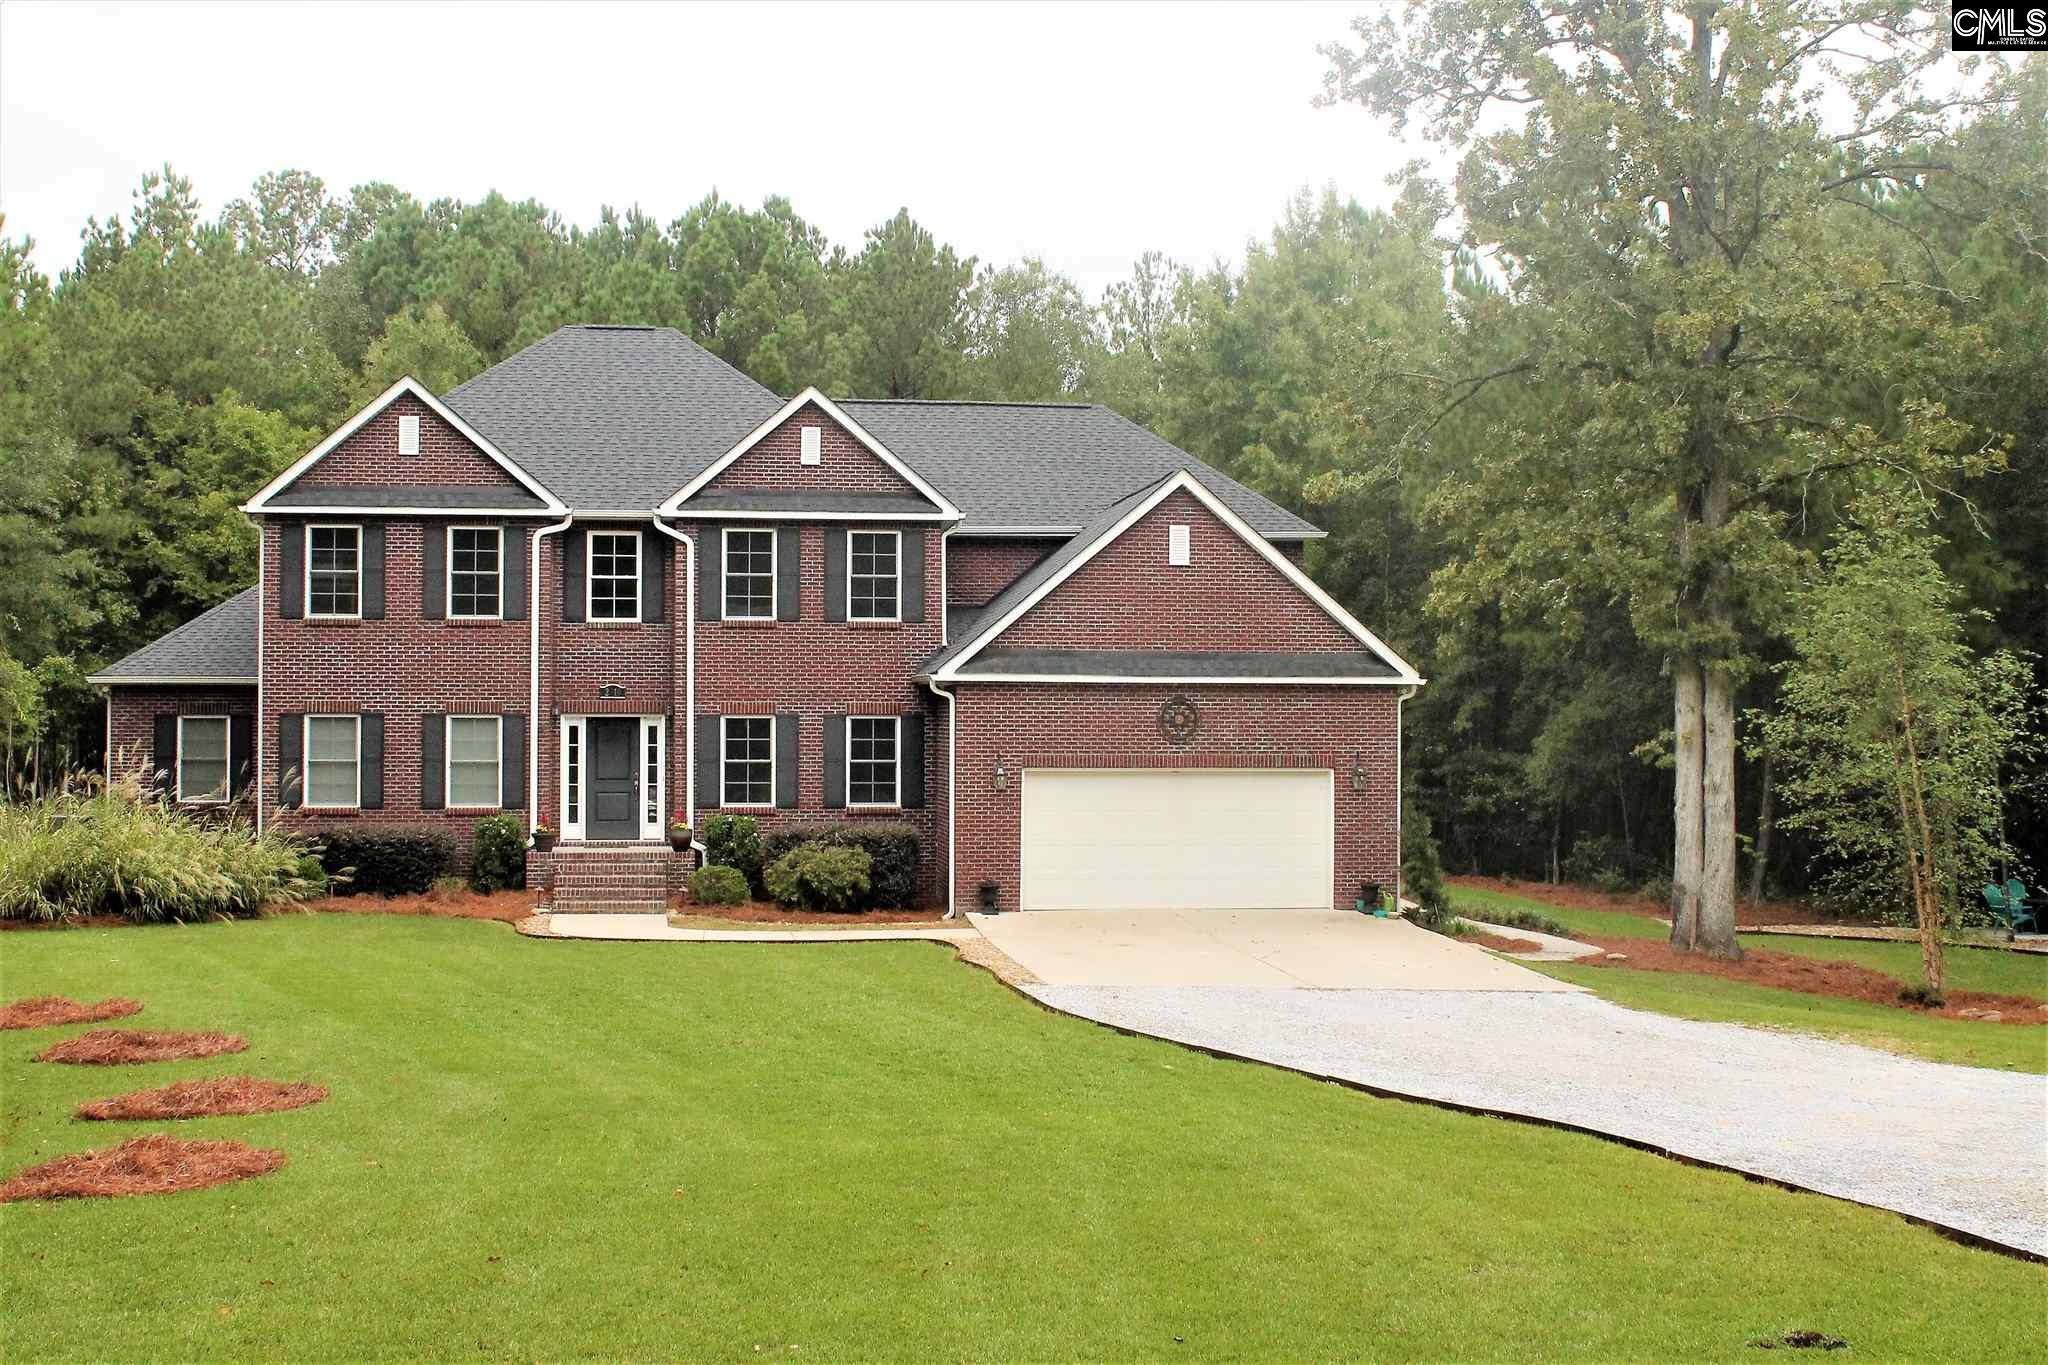 2419 Old Lexington Chapin, SC 29036